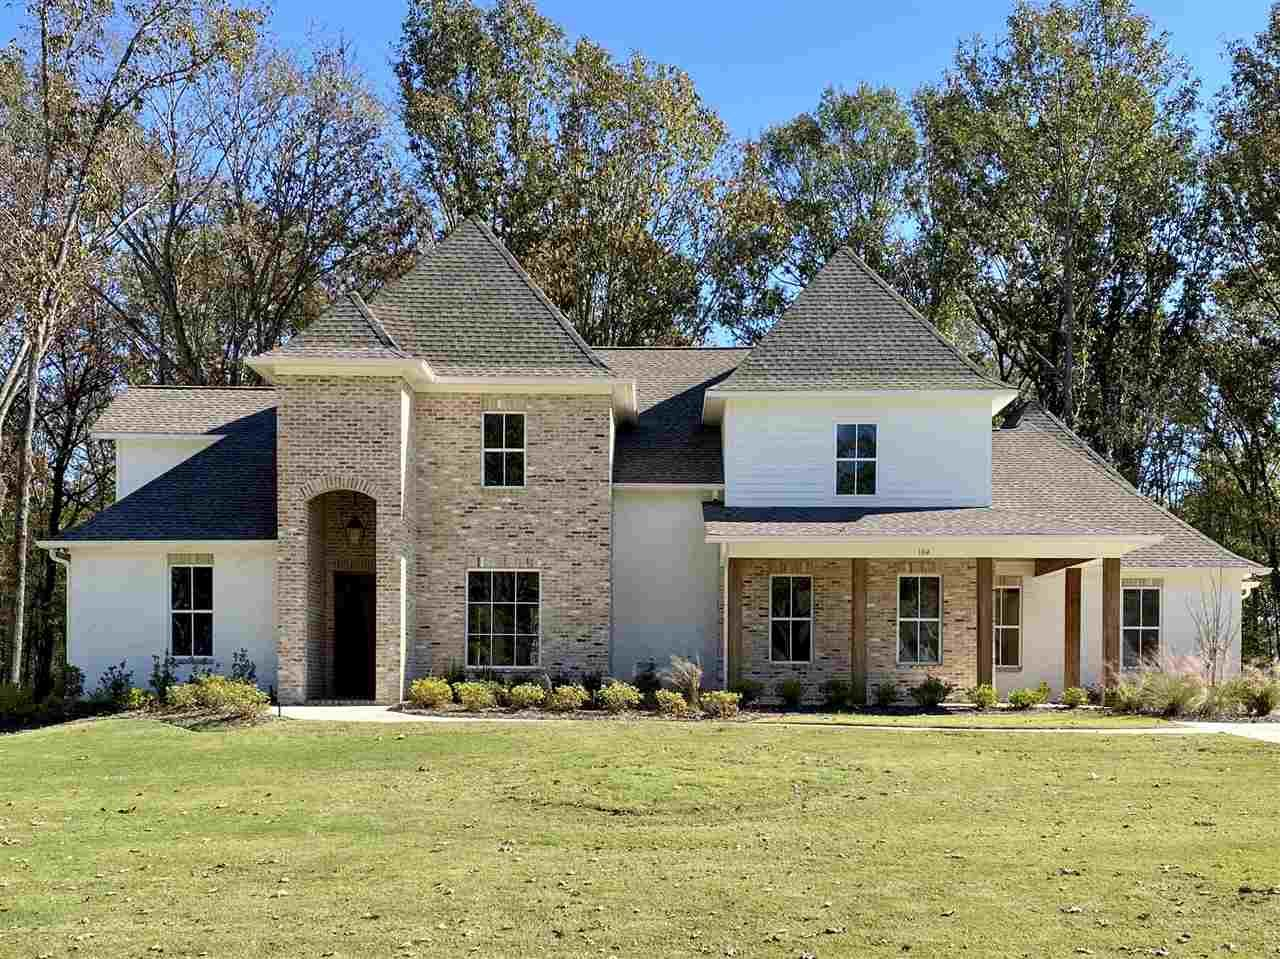 104 SILVERLEAF DR., Madison, MS 39110 - MLS#: 336243